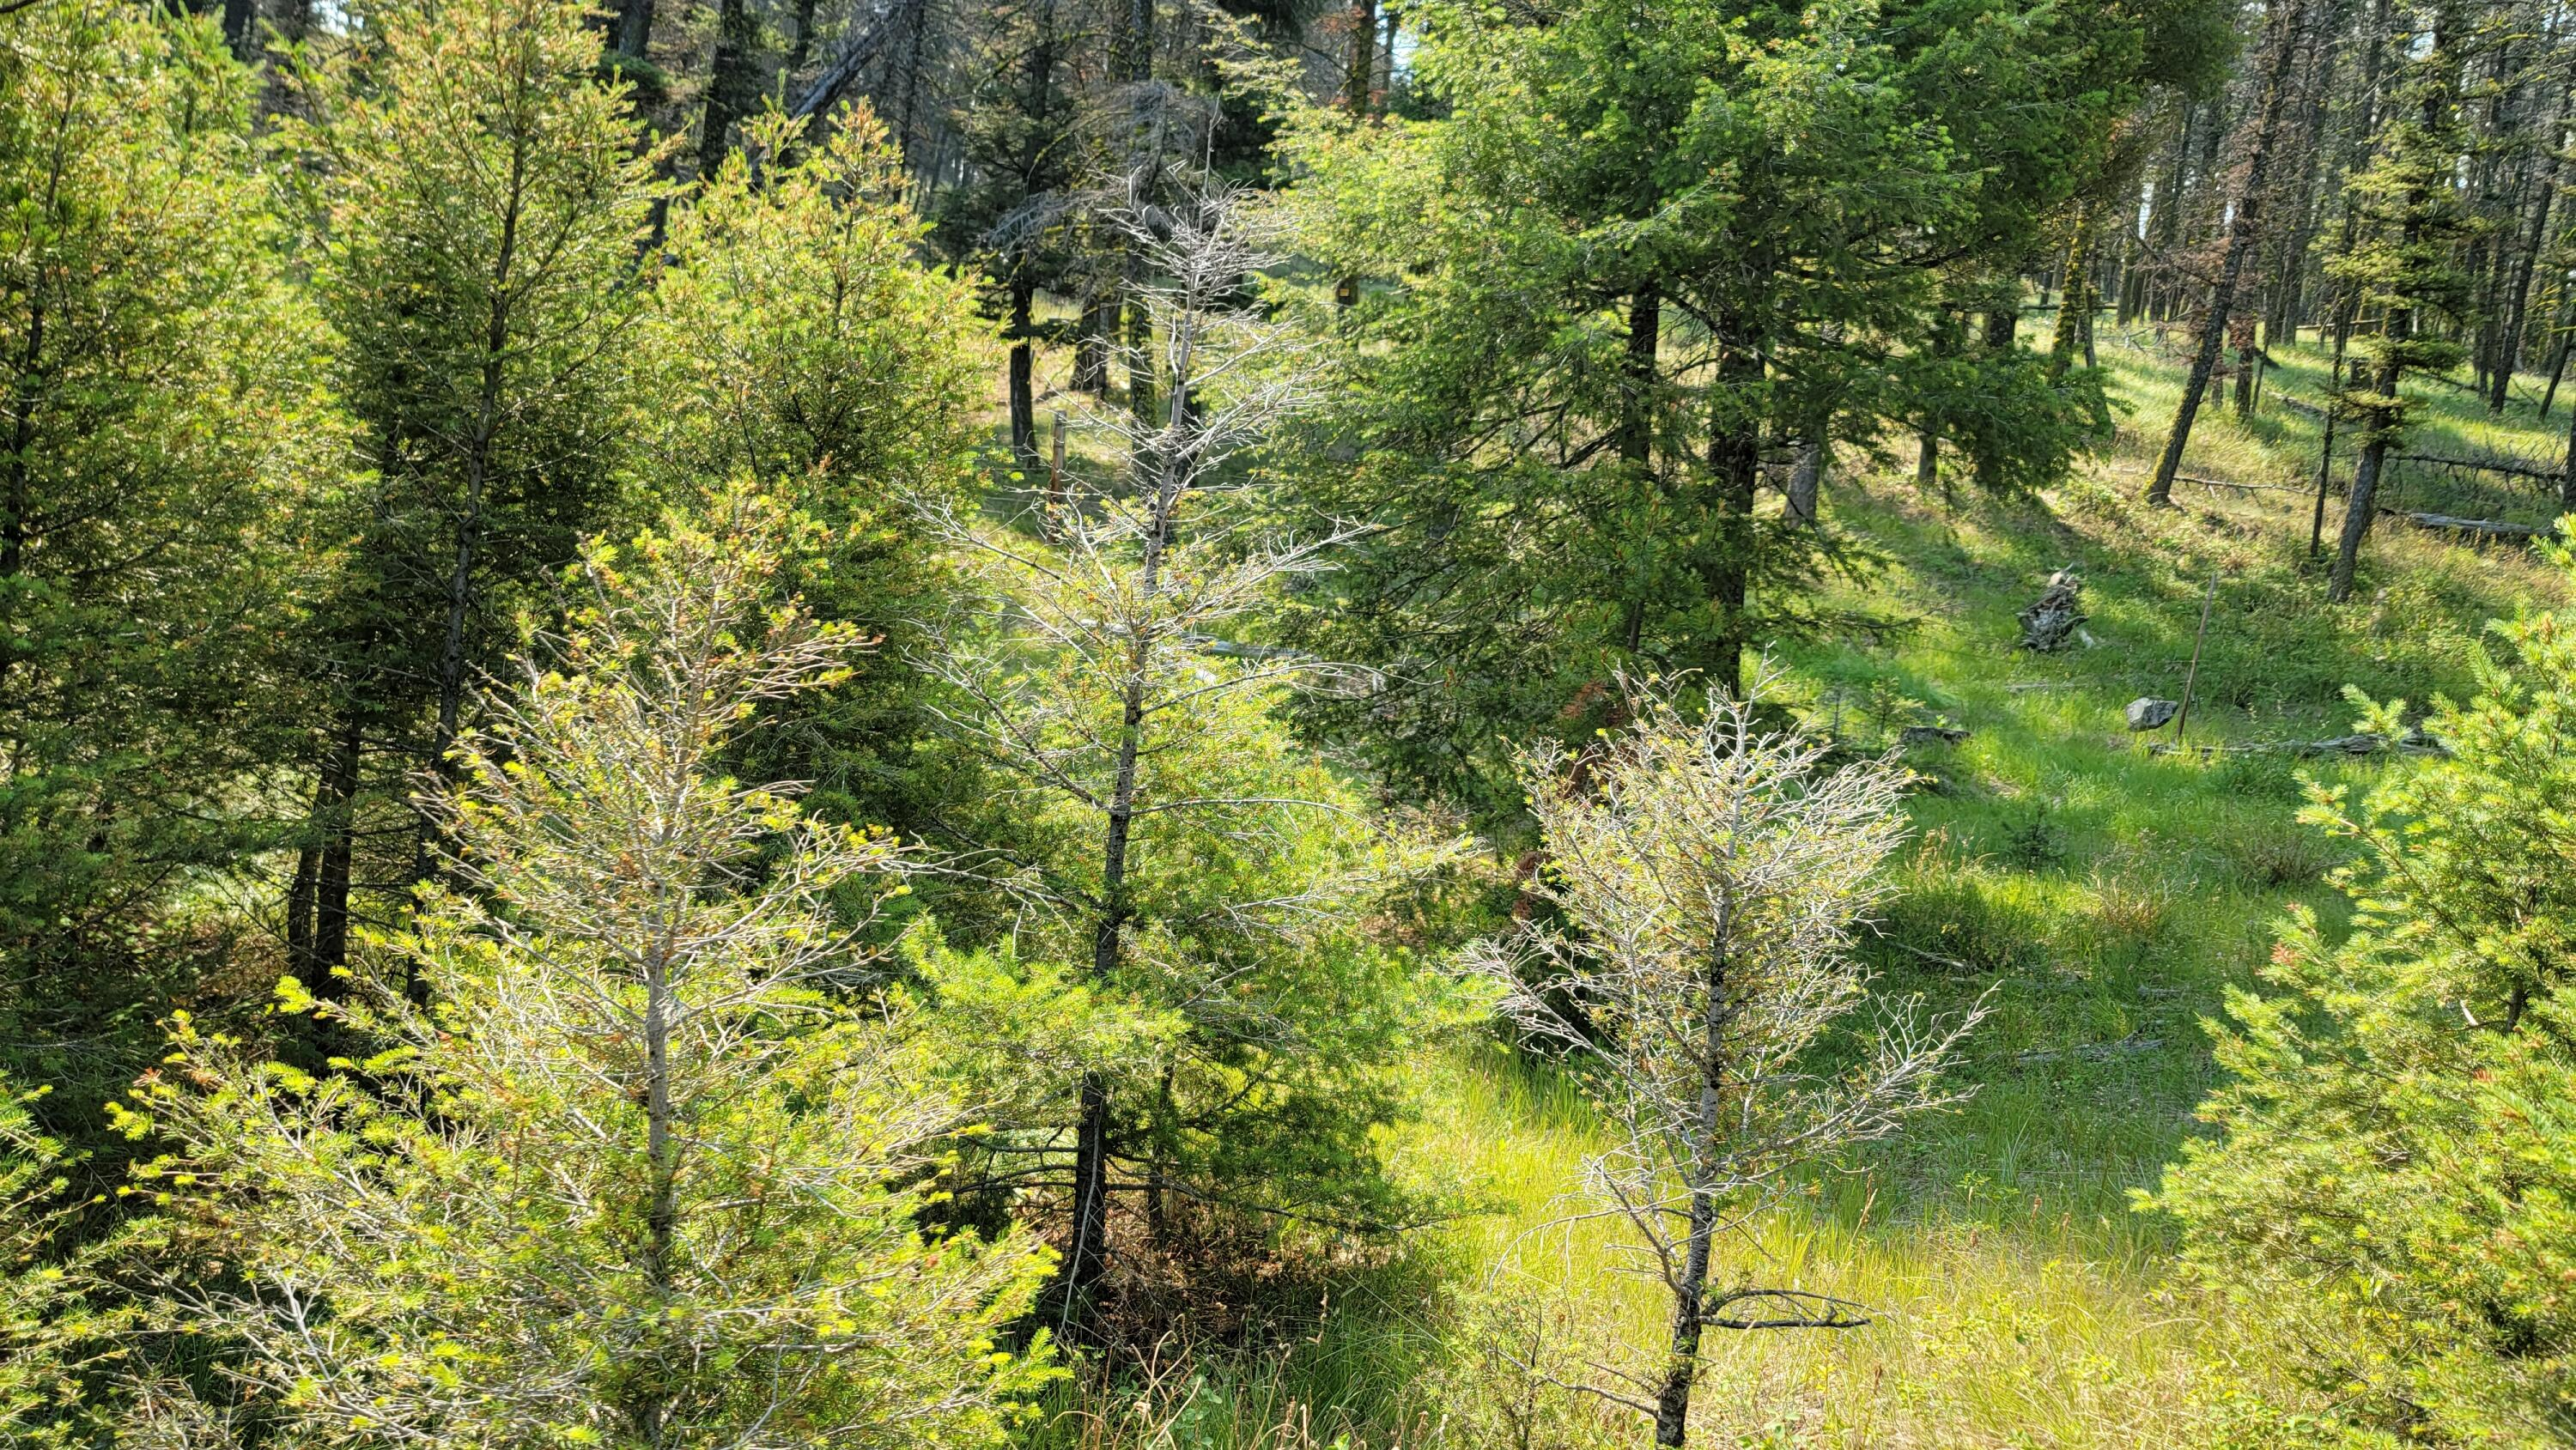 Borders over 20,000 Acres of Public Land, Timber, Views for Miles, Plentiful Wildlife (Deer, Elk, Bear, Cats), Private,Building Sites,Spring, Good Access RoadsCall Dan & Cortney Senecal at 406-439-5414, or your real estate professional.